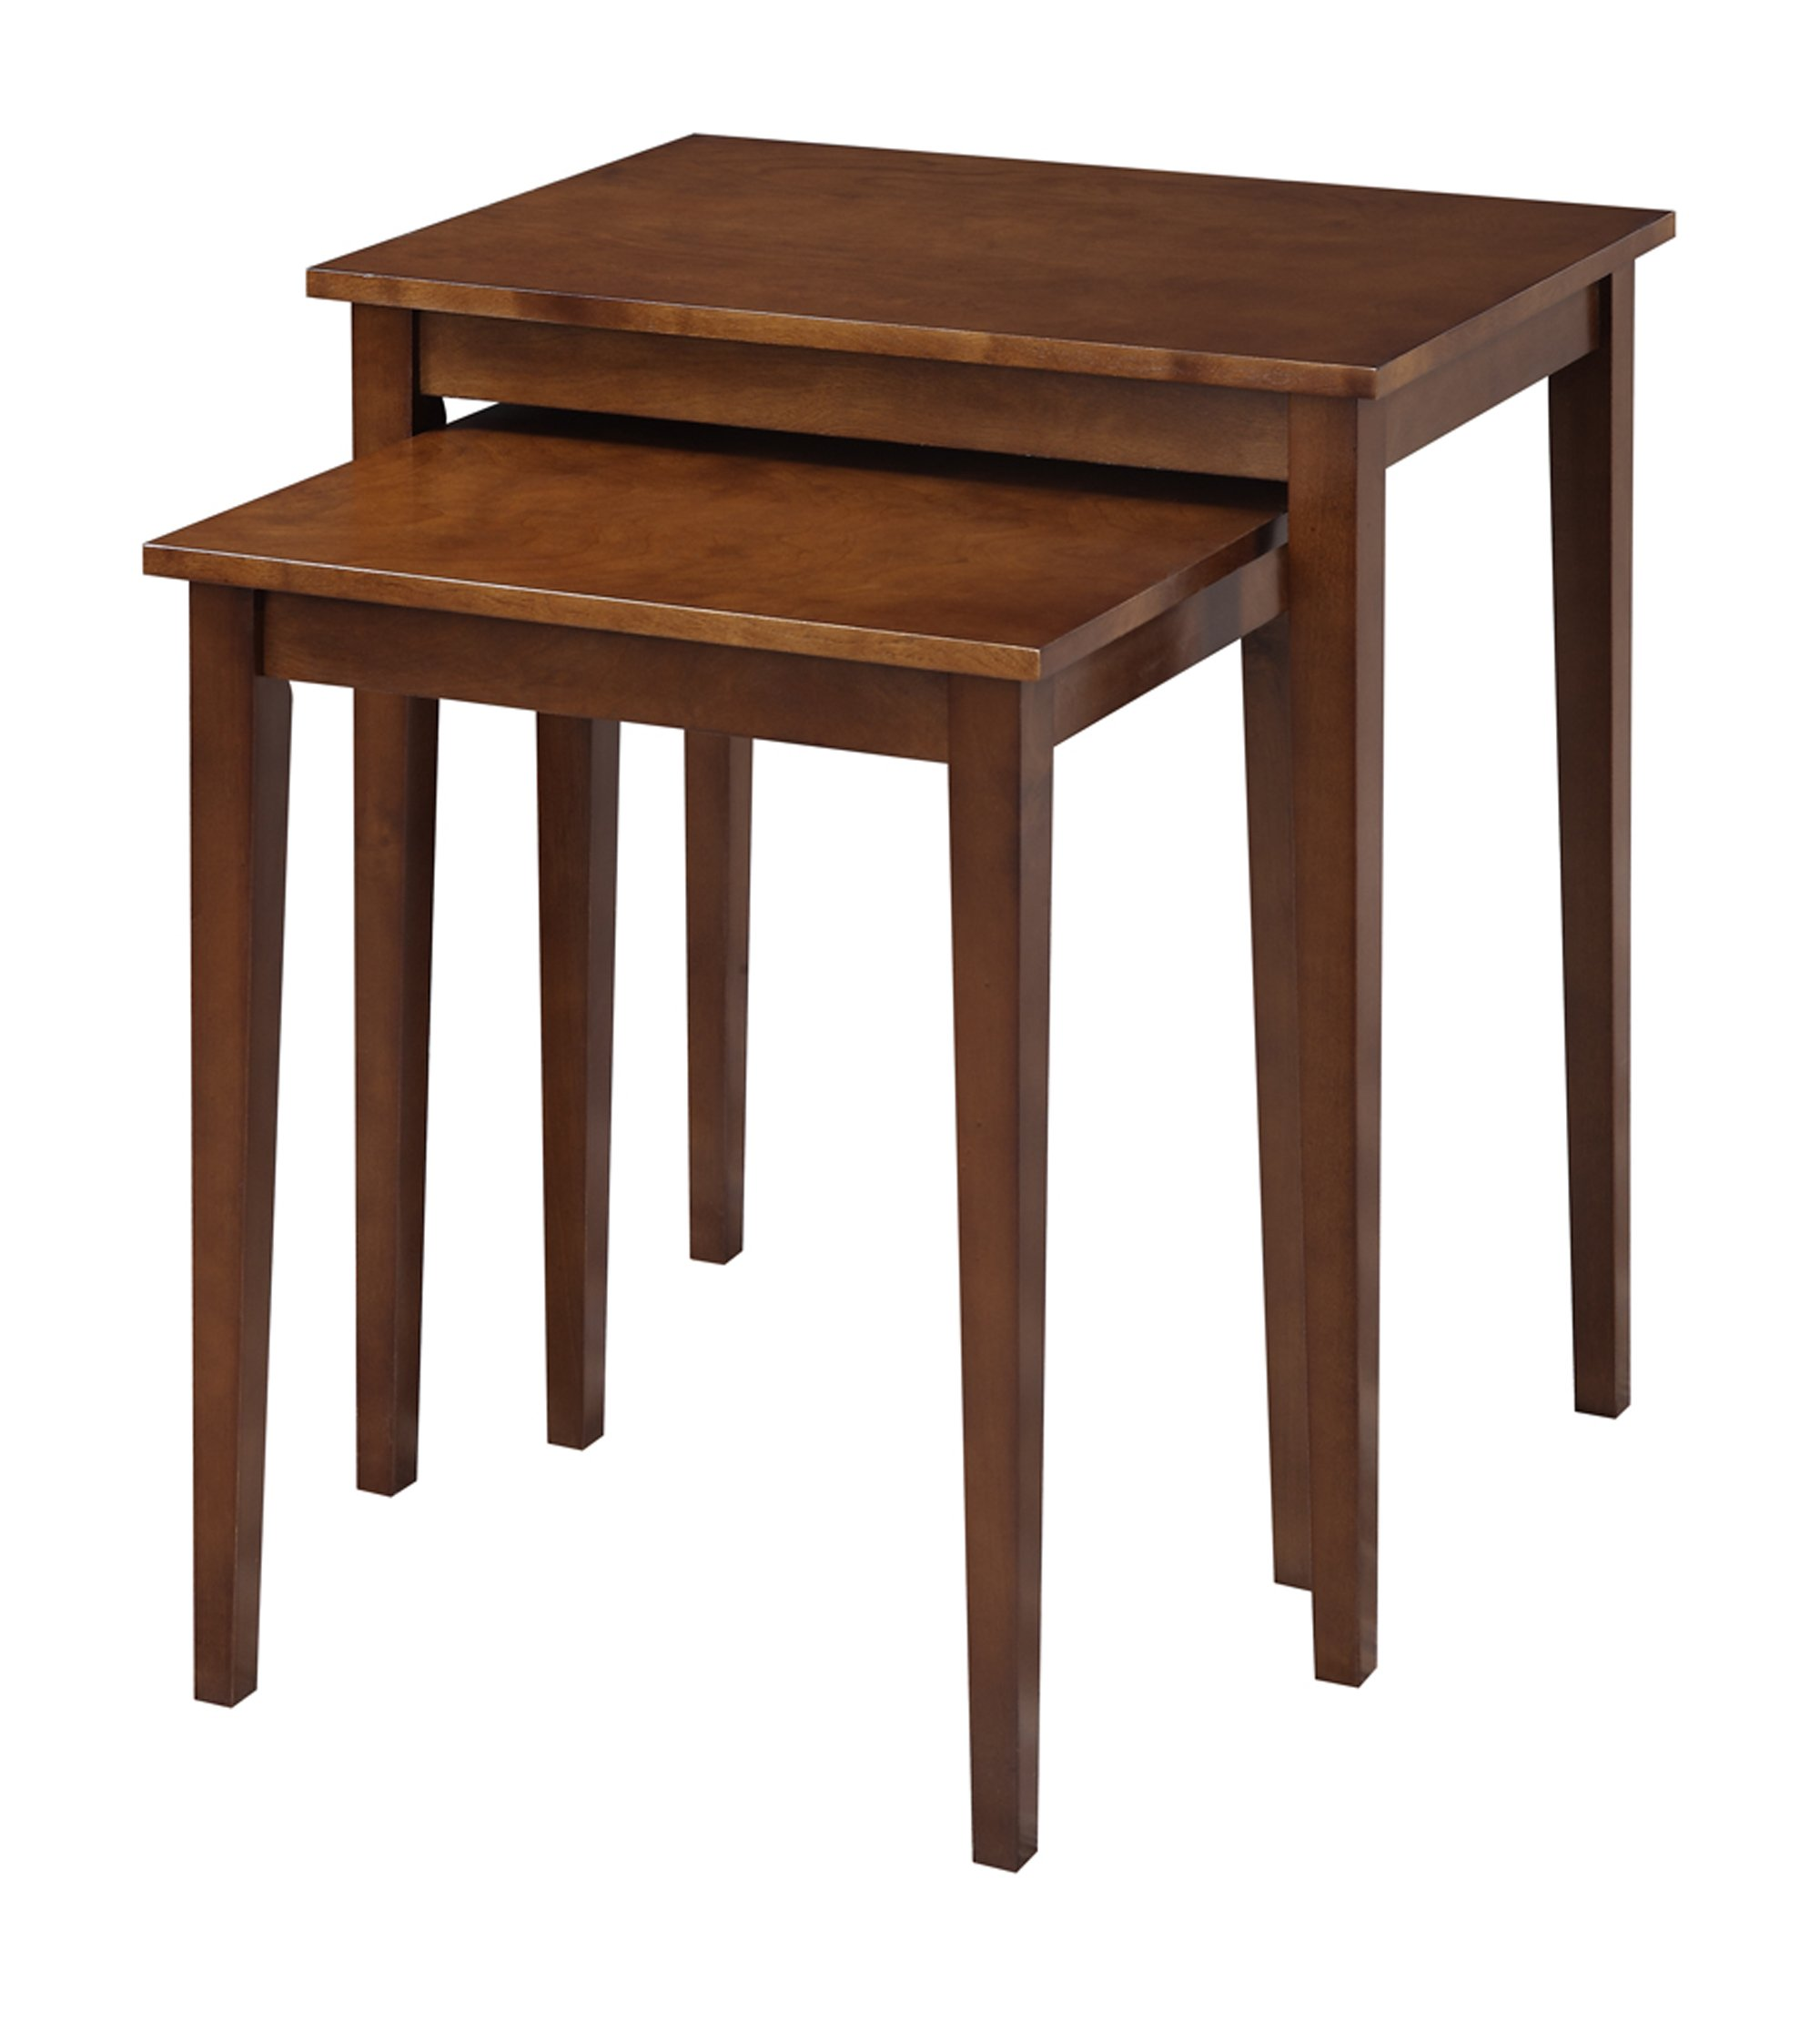 Convenience Concepts American Heritage Nesting End Tables, Espresso by Convenience Concepts